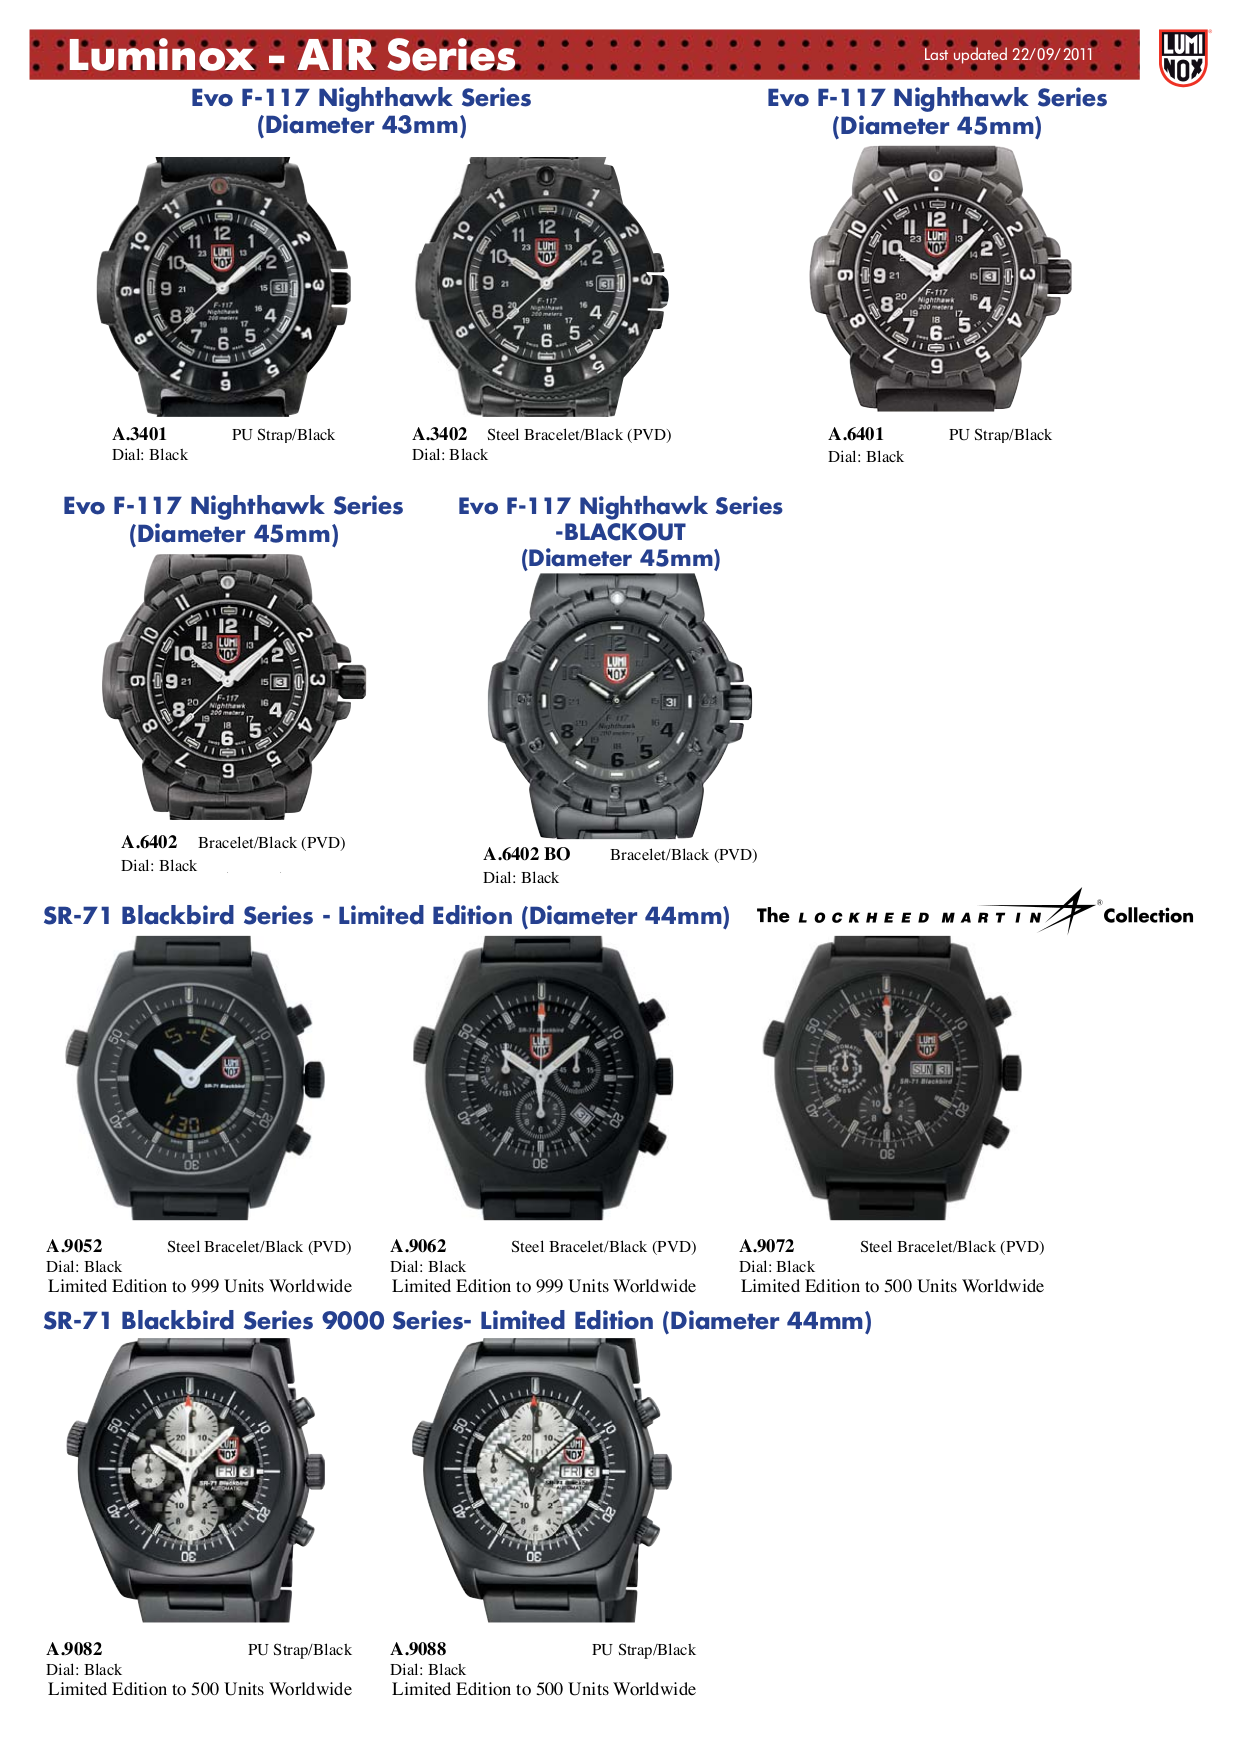 pdf for Luminox Watch EVO F-117 Nighthawk 6401 manual